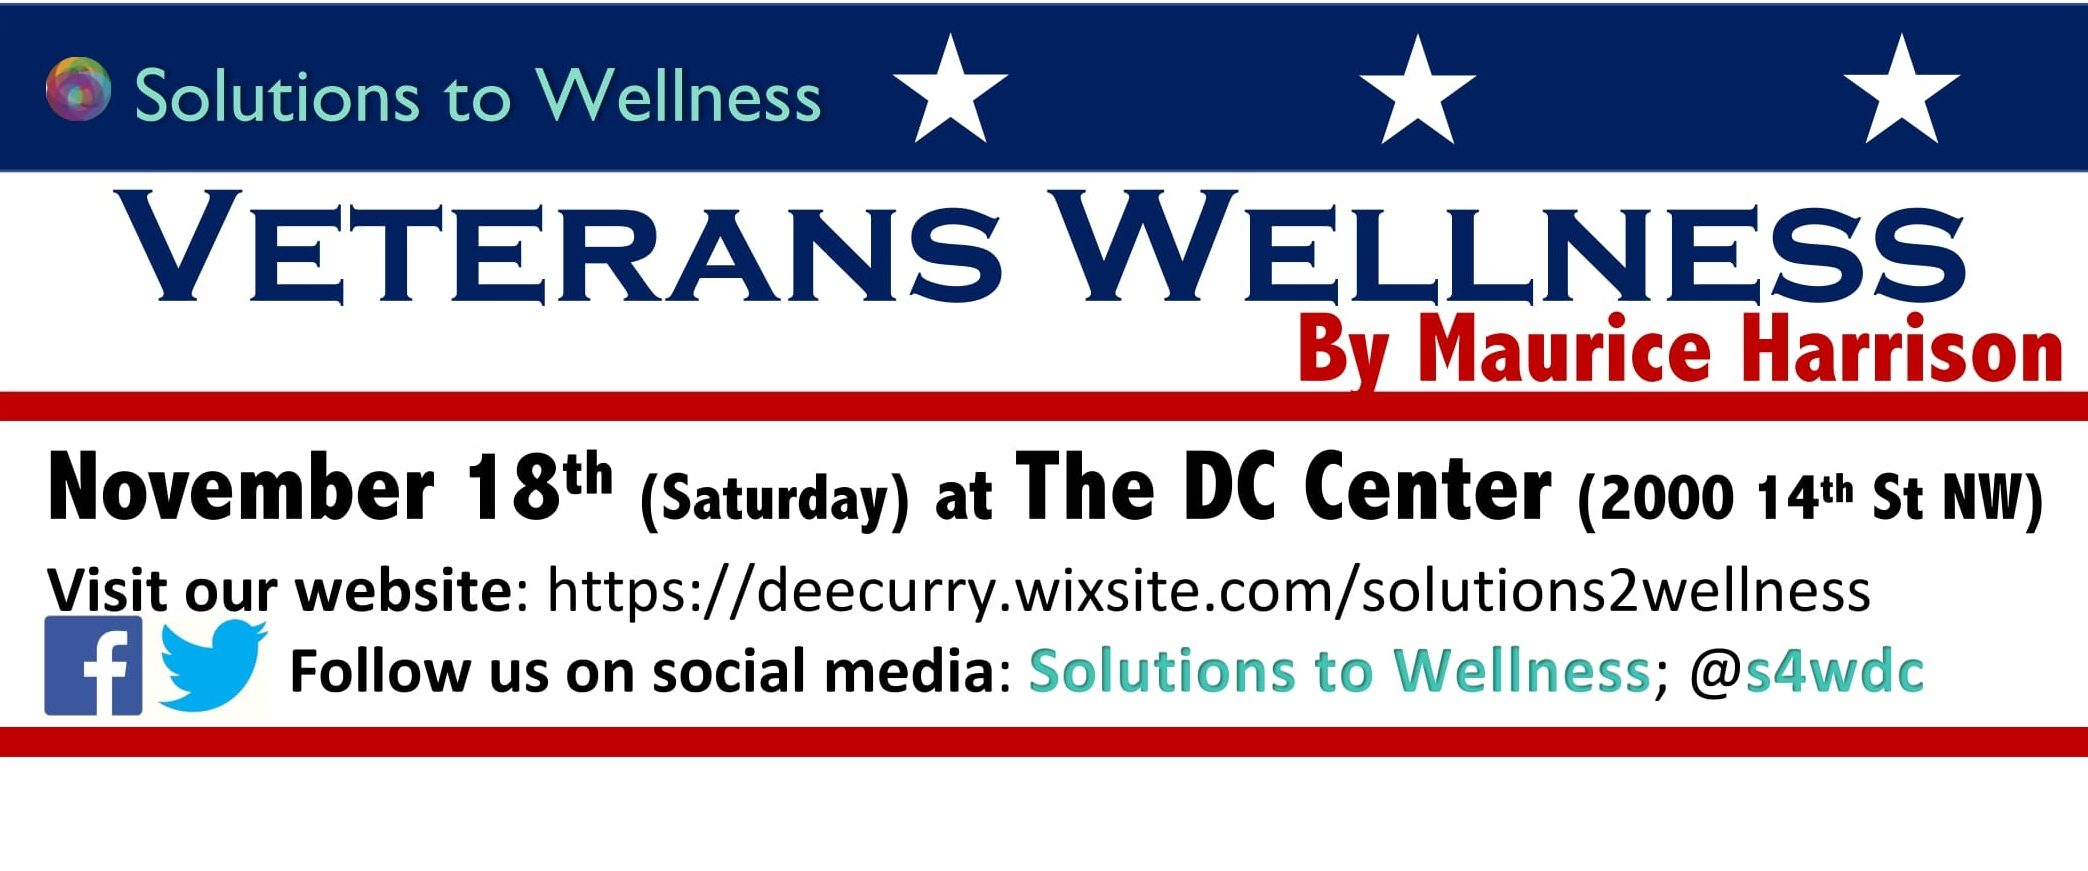 Veterans Affairs & Wellness [Solutions to Wellness 2017]